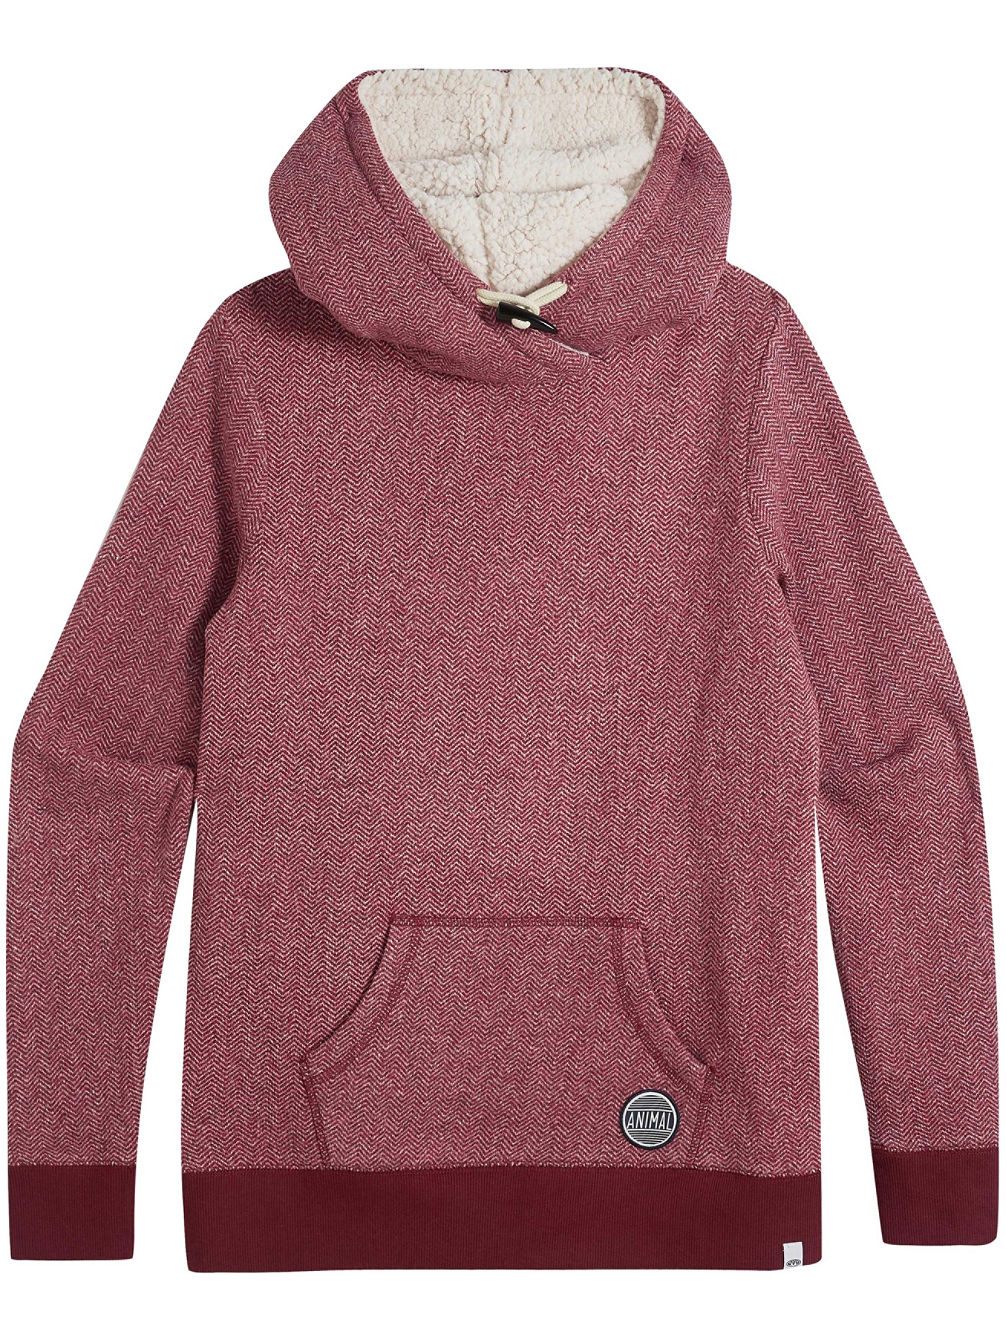 Buy Animal Stitched Hoodie online at blue-tomato.com 8638a5371